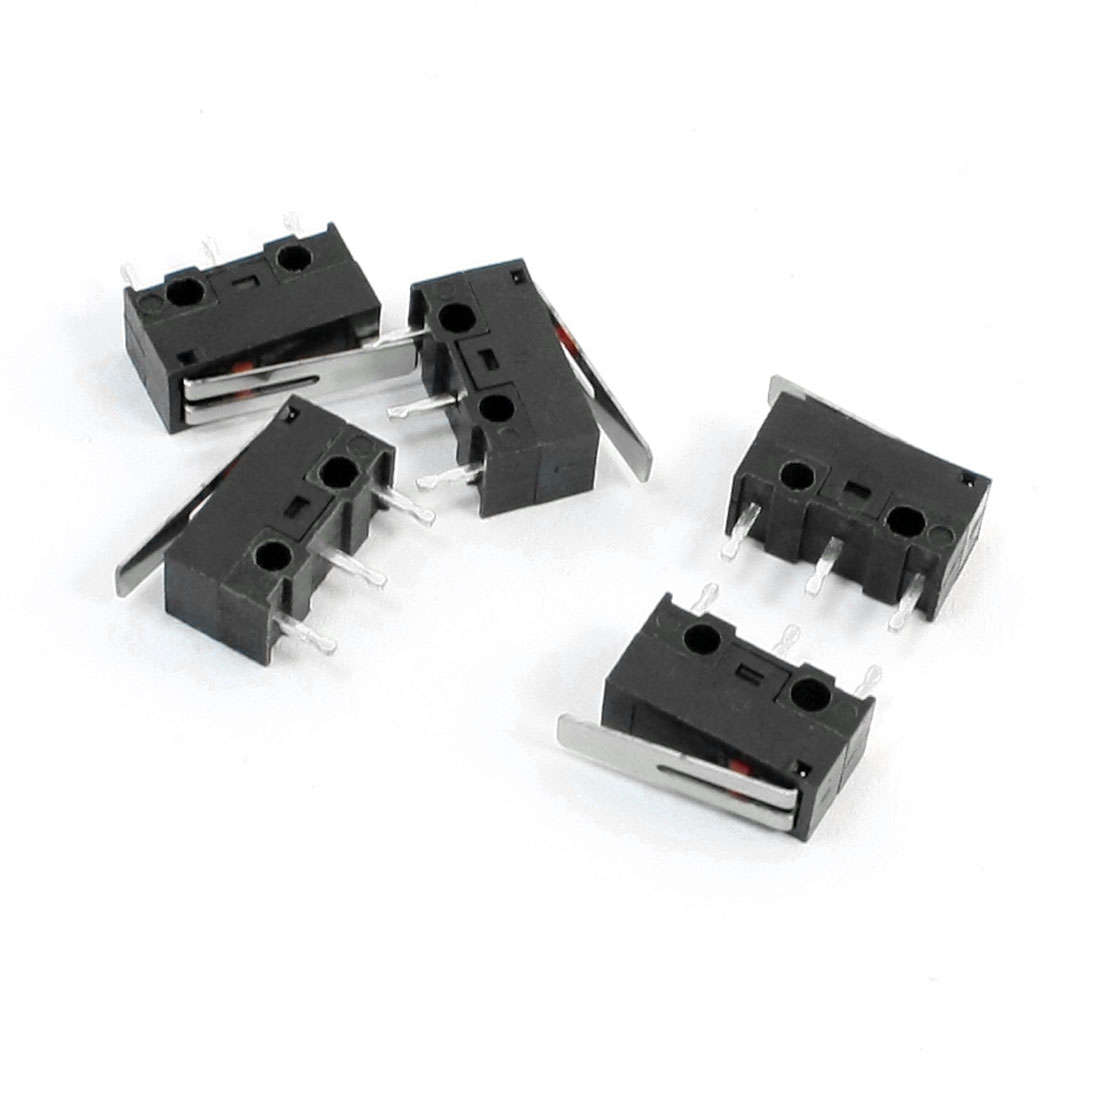 5-Pcs-N-O-N-C-SPDT-Short-Hinge-Lever-3-Pin-Micro-Switch-1A-125VAC